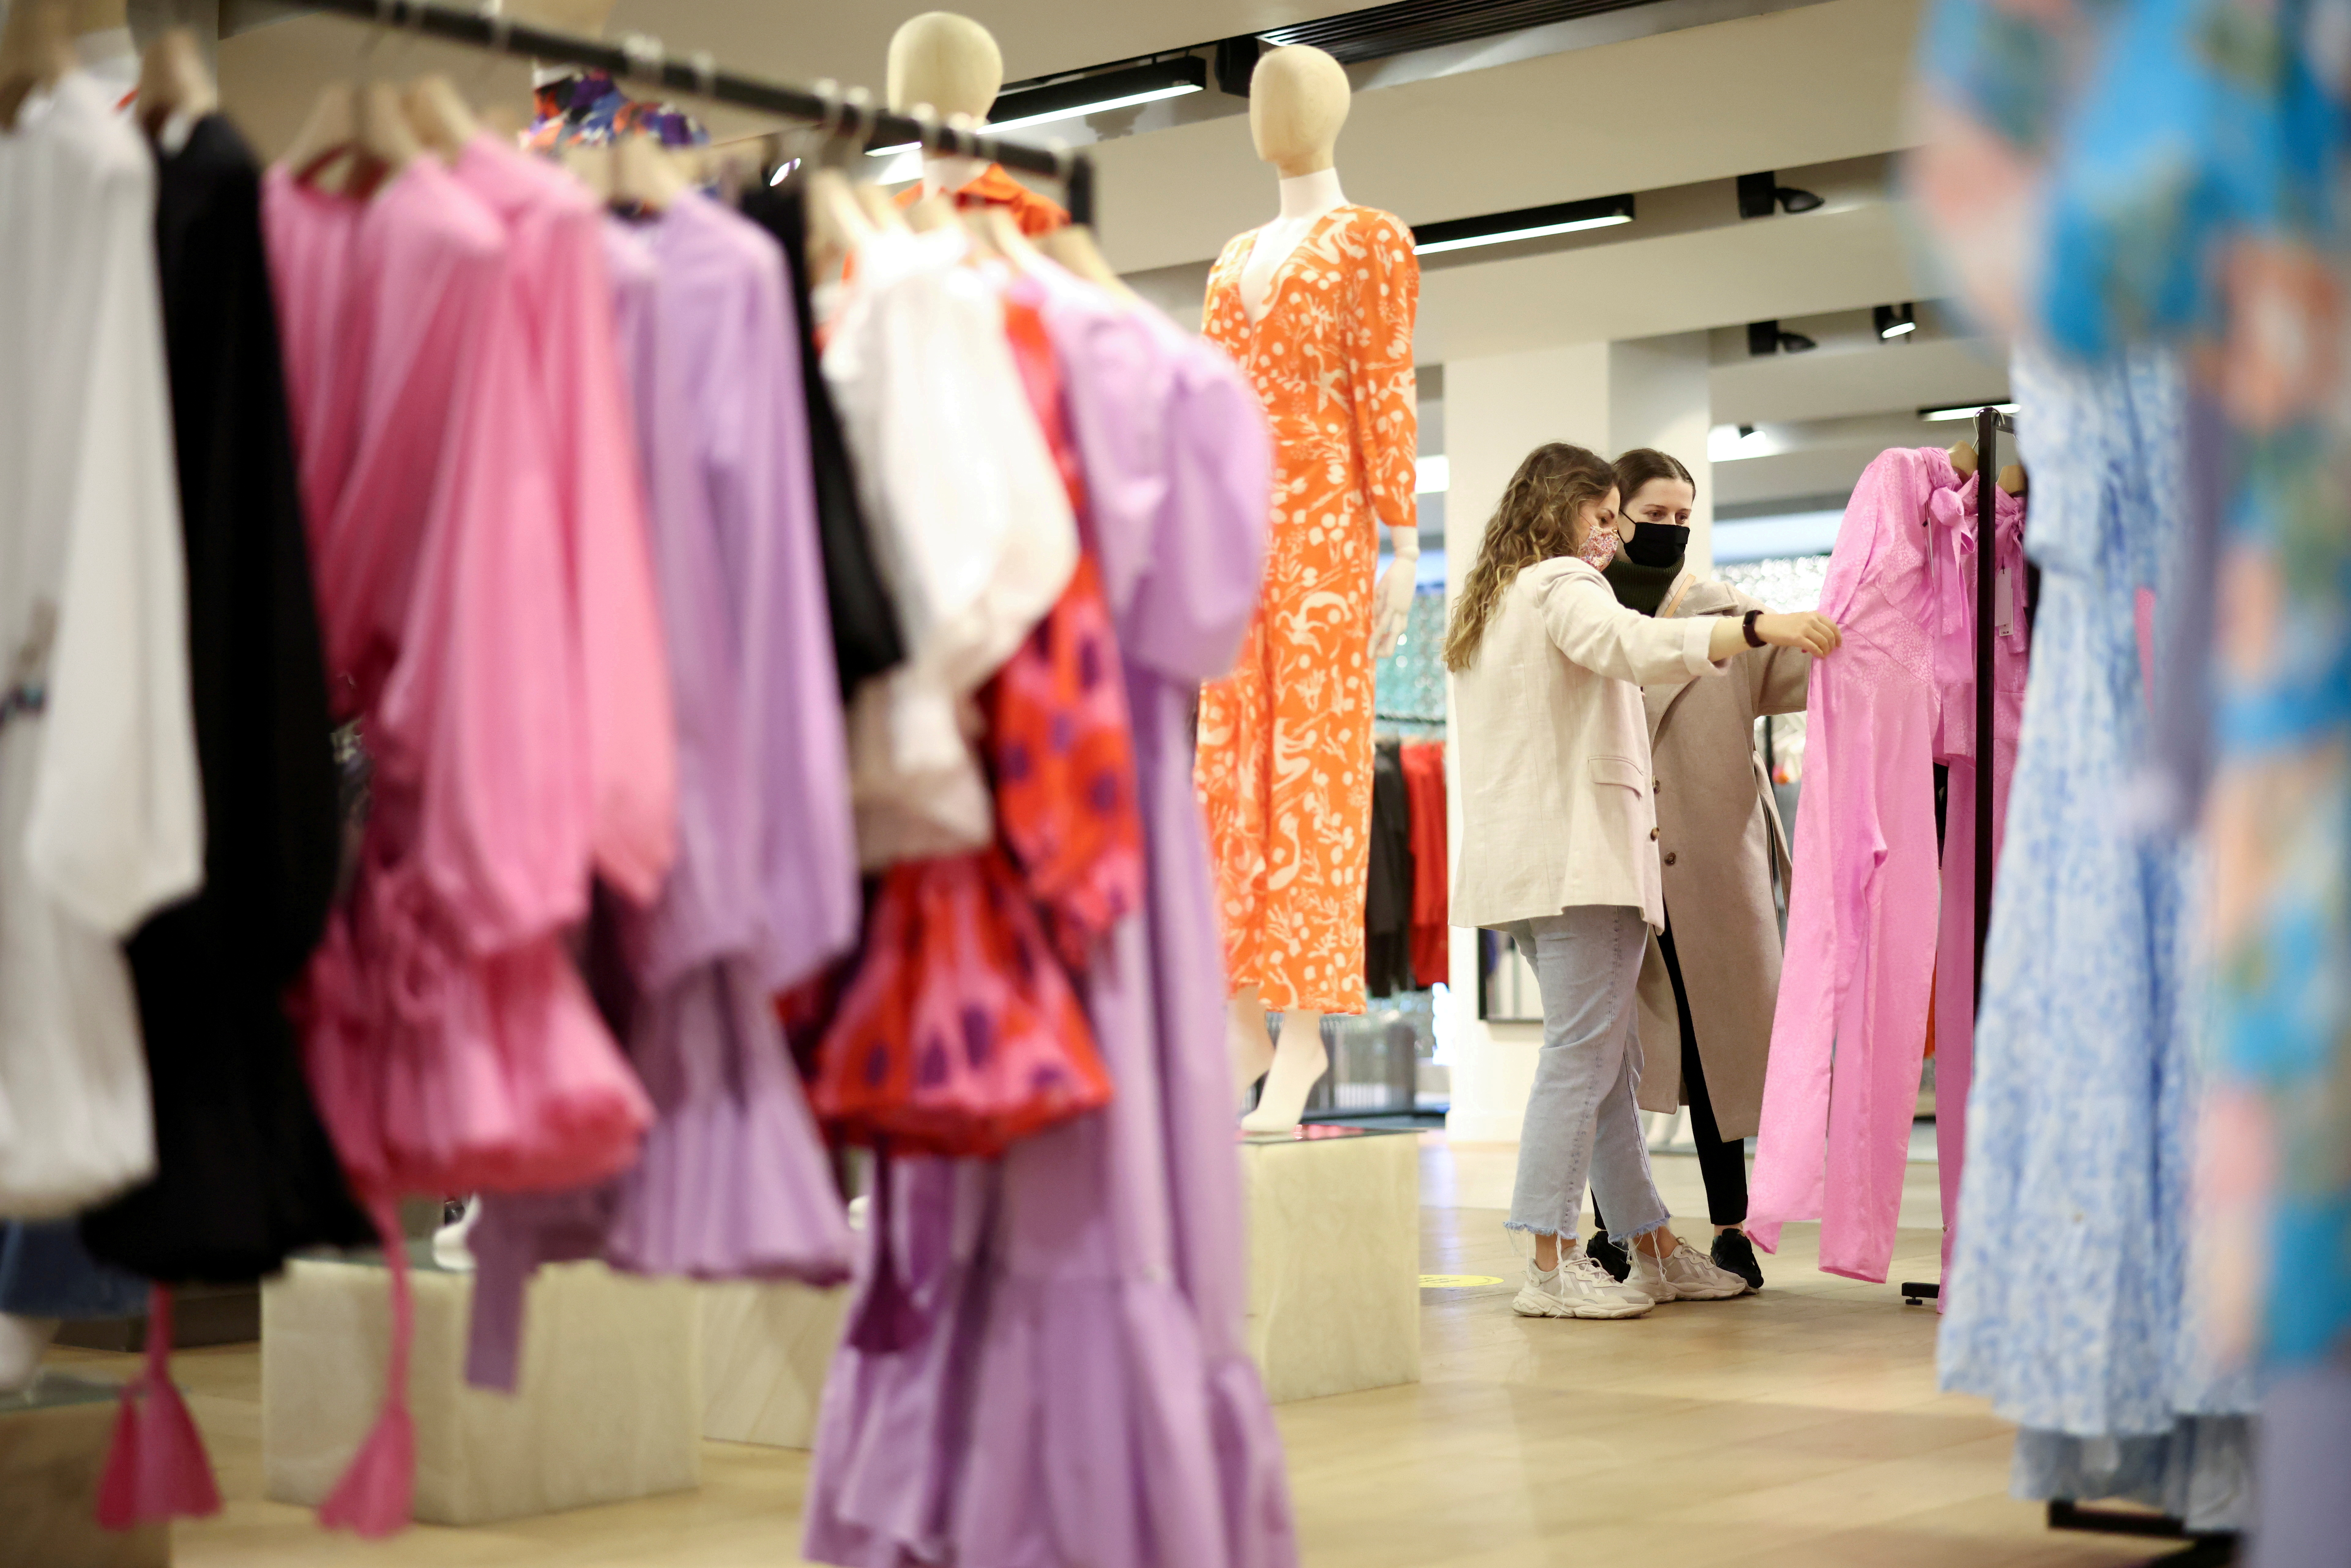 People shop in the Selfridges department store on Oxford street, as the coronavirus disease (COVID-19) restrictions ease, in London, Britain April 12, 2021. REUTERS/Henry Nicholls